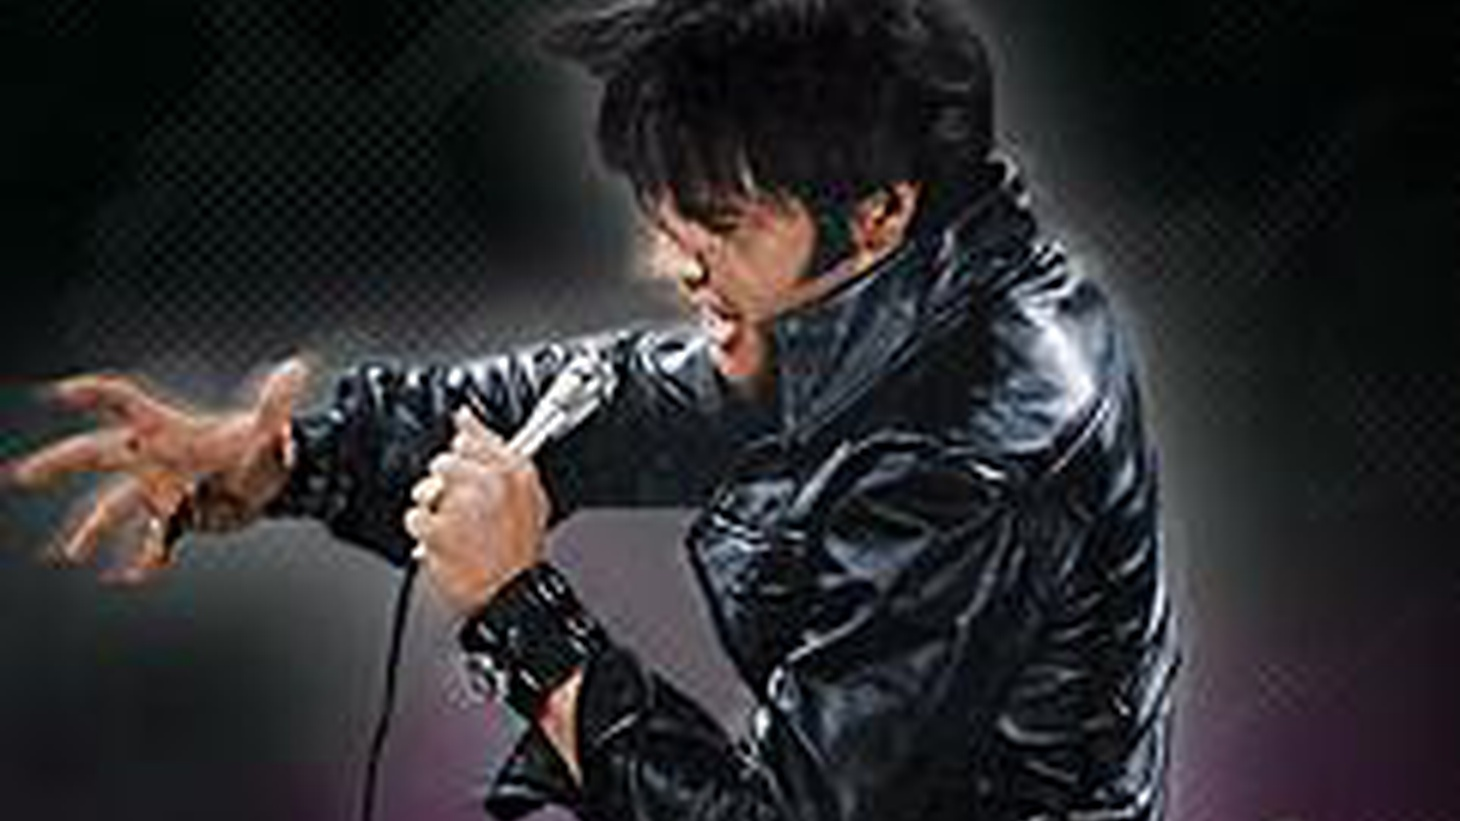 """NBC's 1968 Elvis Comeback Special has been called one of  the """"Most Memorable Moments in Television History."""" Hear  unplugged sessions, backstage rehearsals and other rarely heard recordings, some of the move captivating that Elvis Presley ever set to  tape."""